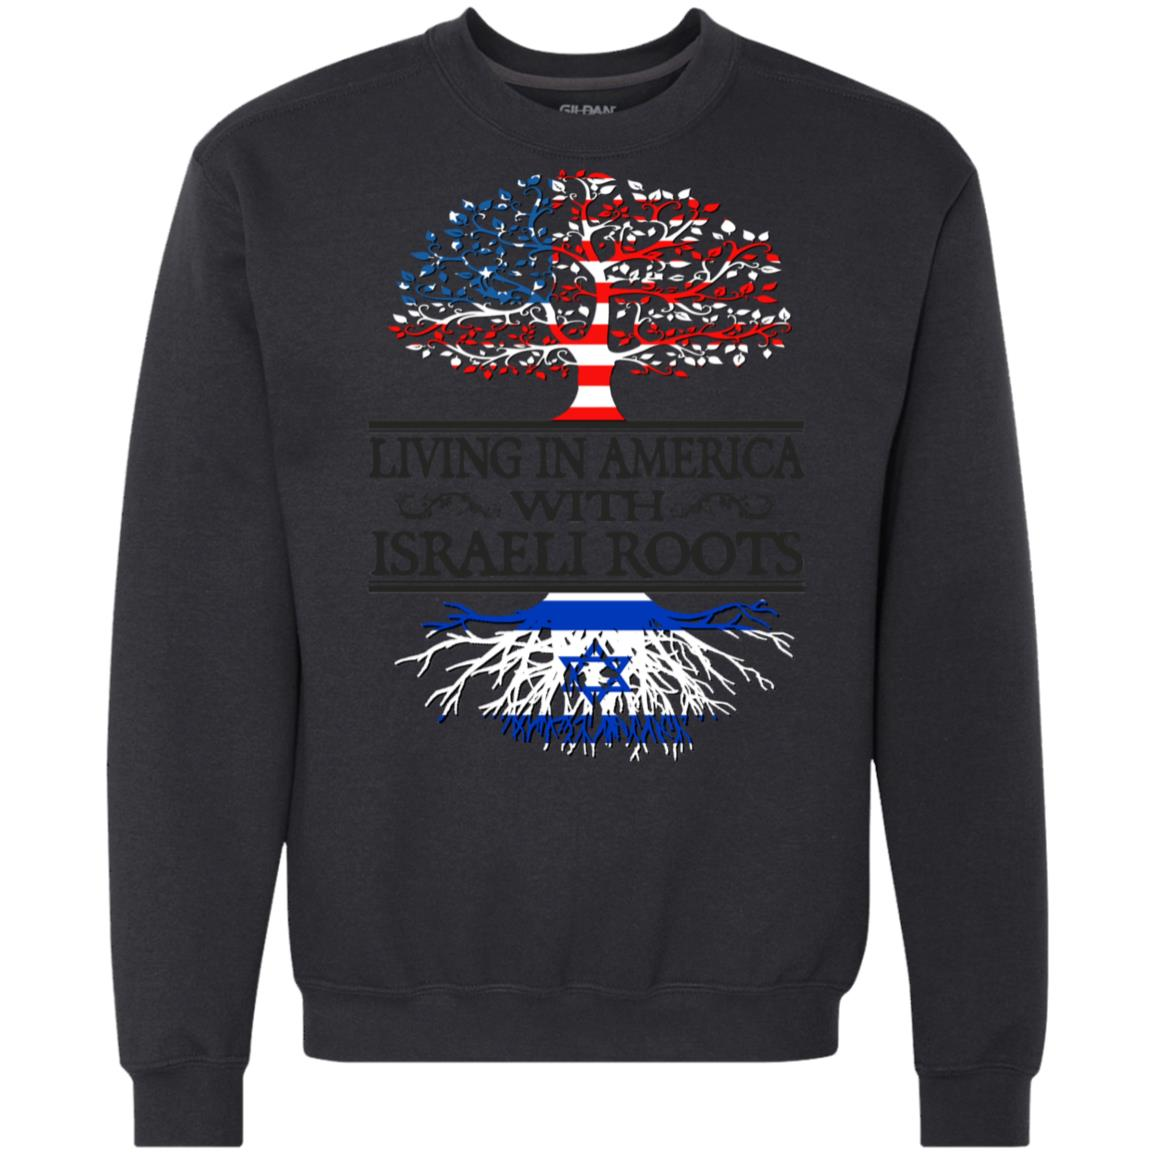 Israel America Living In America Israeli Roots Hoodies Sweatshirts